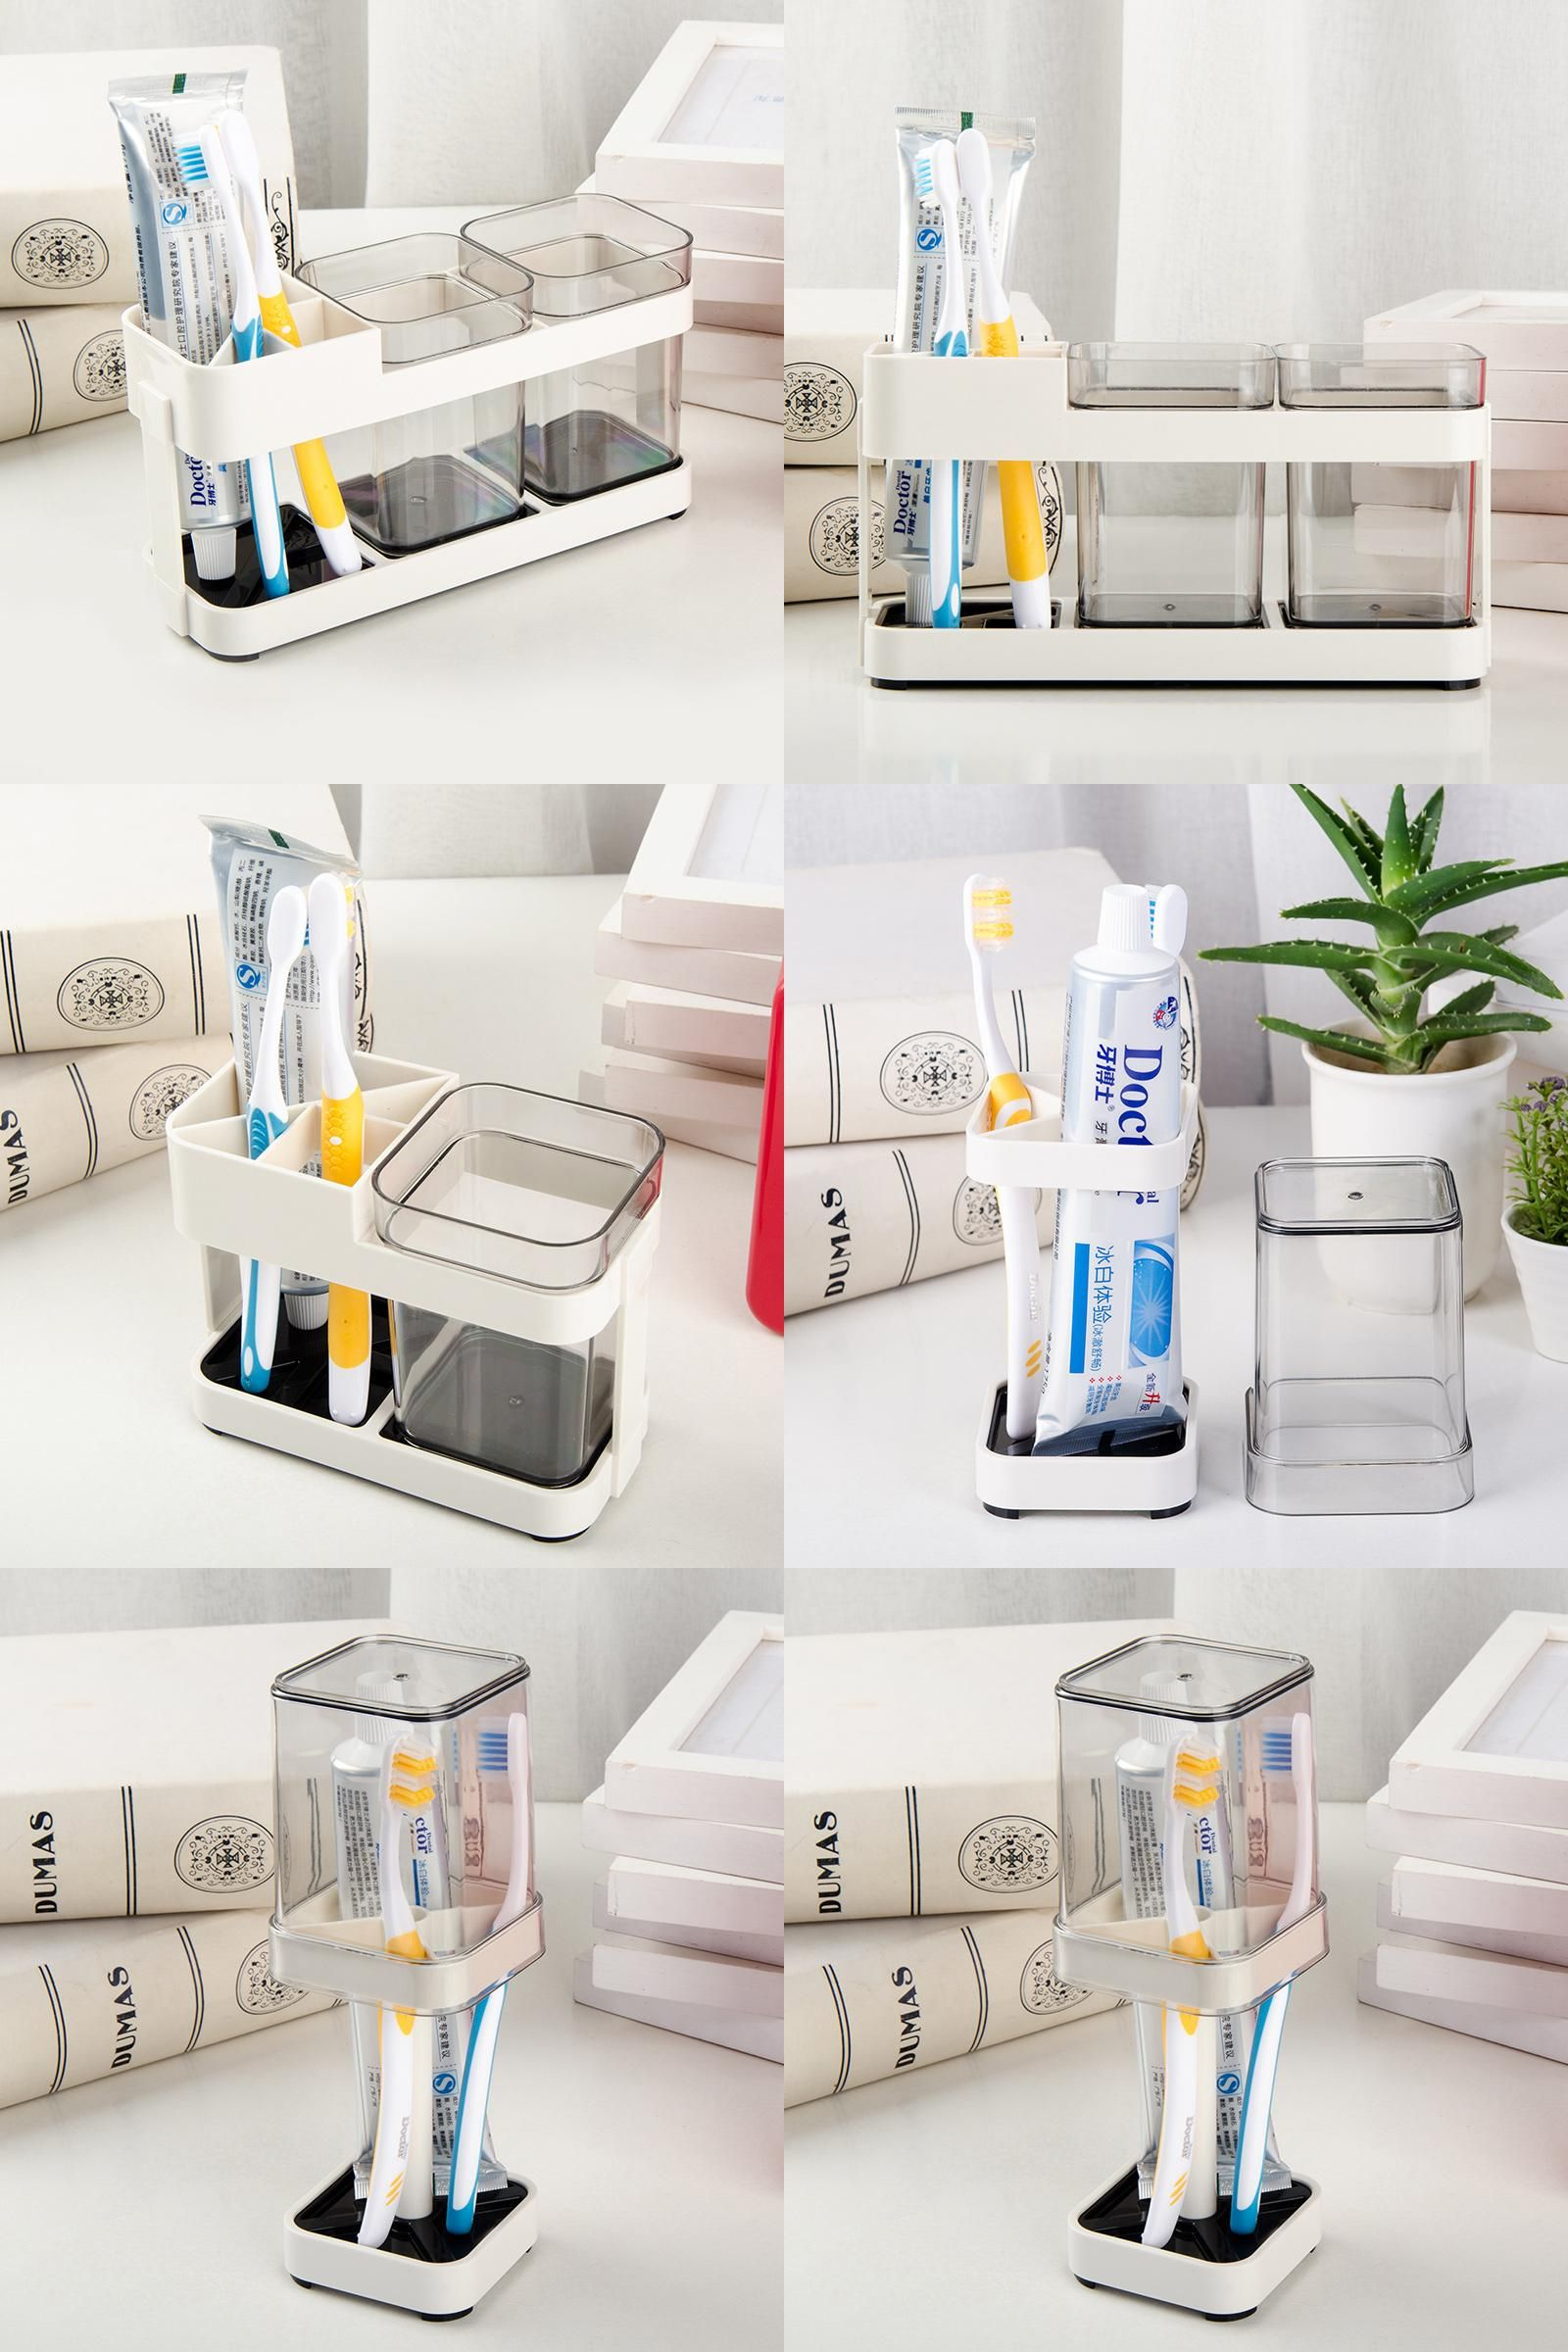 Visit to Buy] Creative Bathroom Supplies Wash Set Toothpaste Tumbler ...